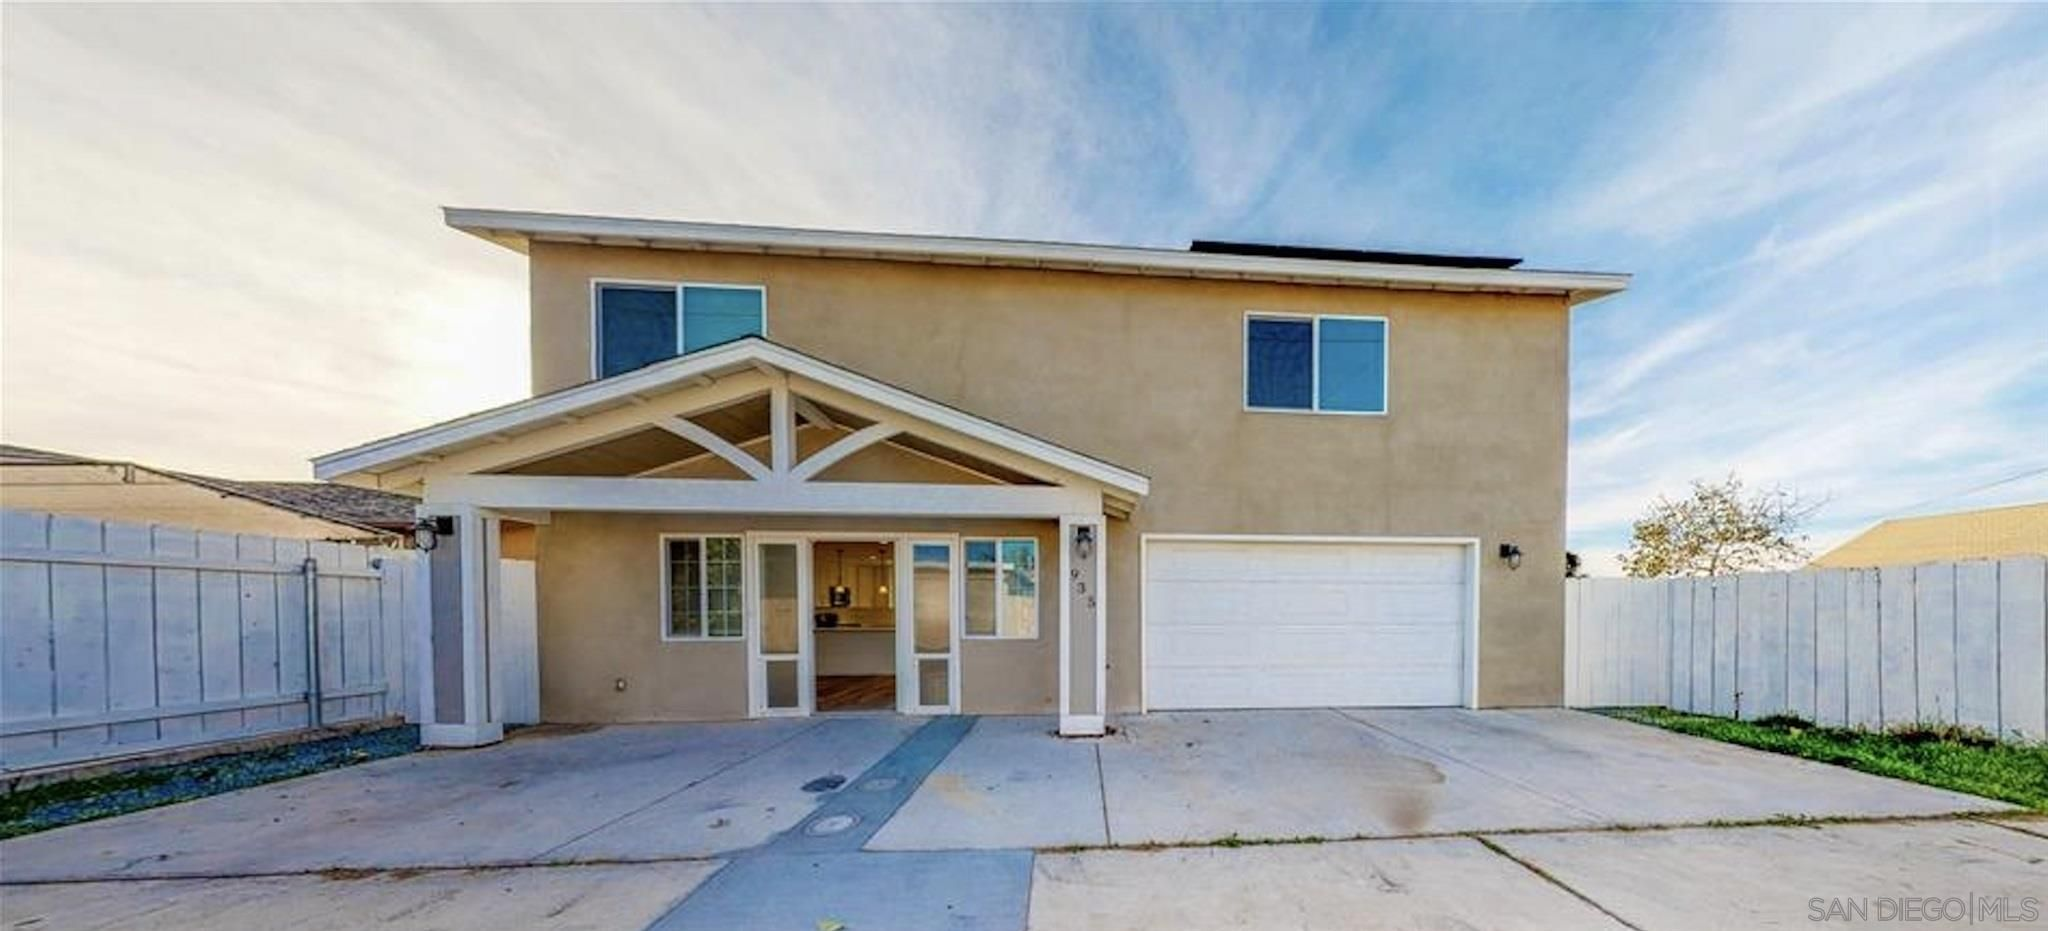 Main Photo: IMPERIAL BEACH House for sale : 4 bedrooms : 935 Emory St